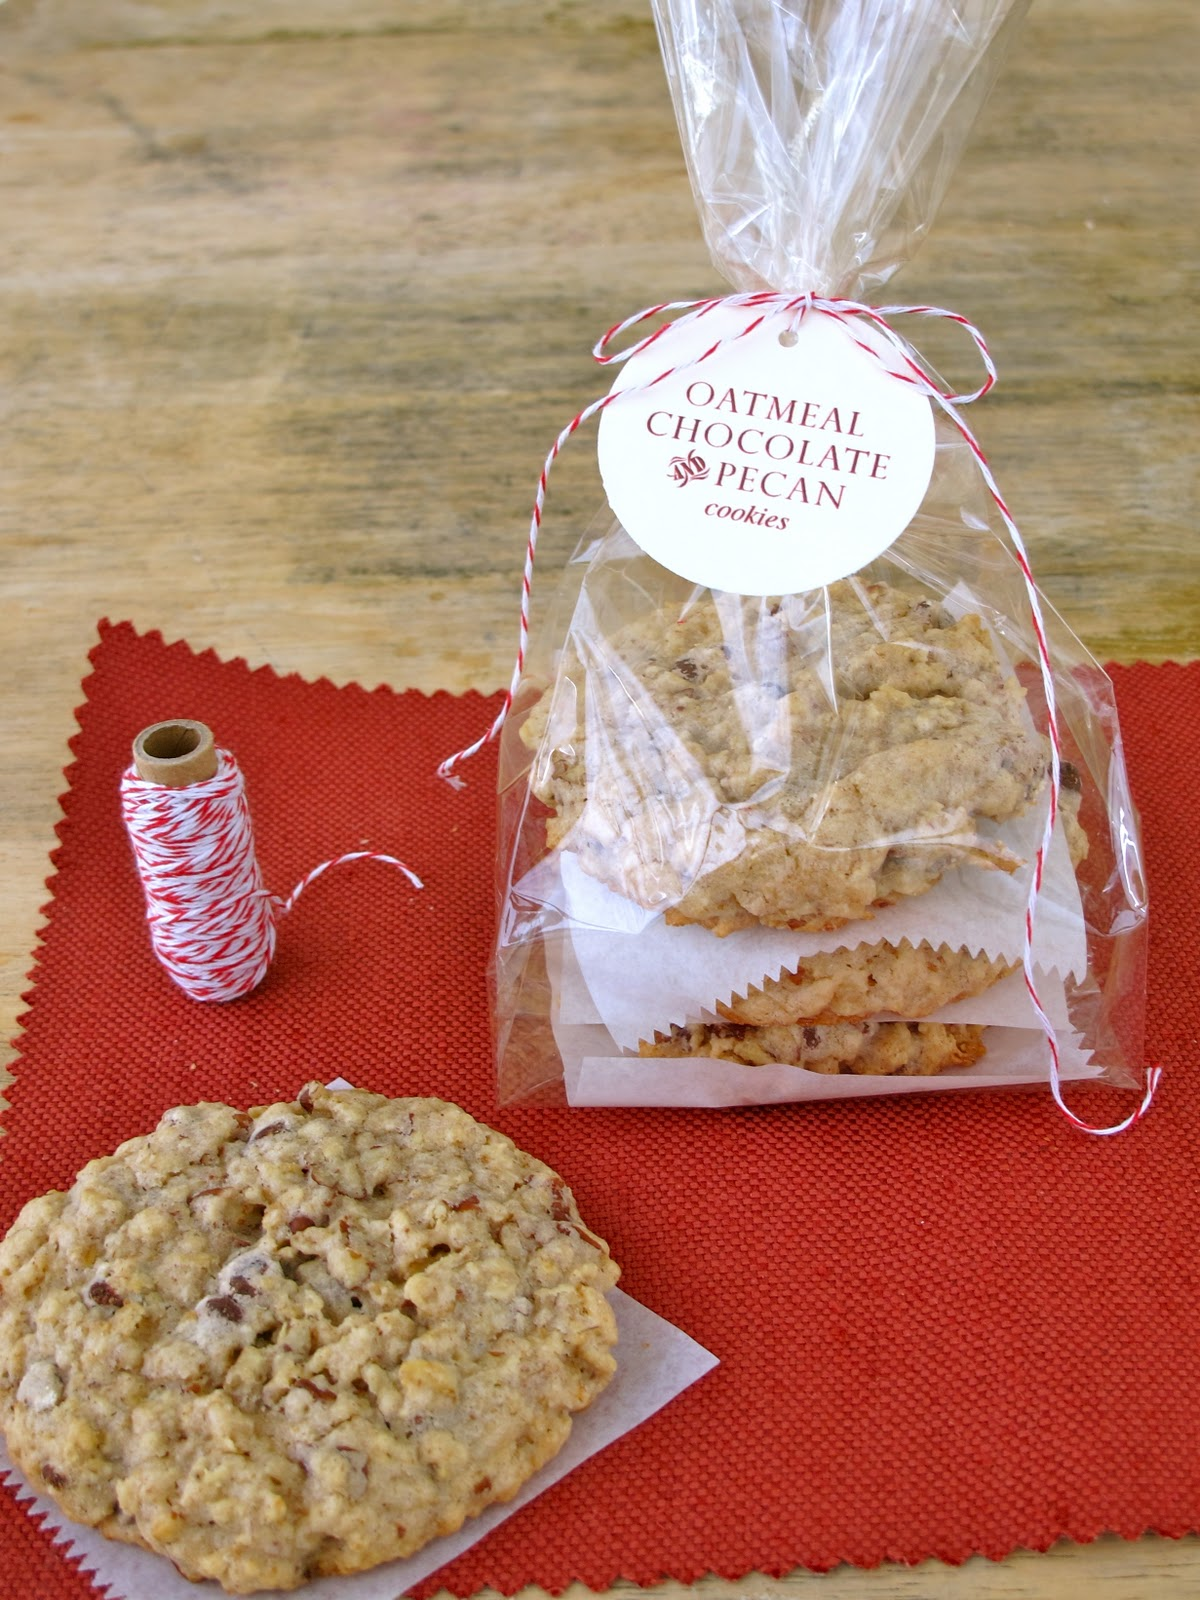 Enclose a delicious cookie treat in this inventive packaging for a perfect homemade gift. Package Your Cookies. 2 of 5 Cookie Packaging Ideas from The Martha Stewart Show Cookie Packaging Ideas ; Holiday Cookies for Santa.